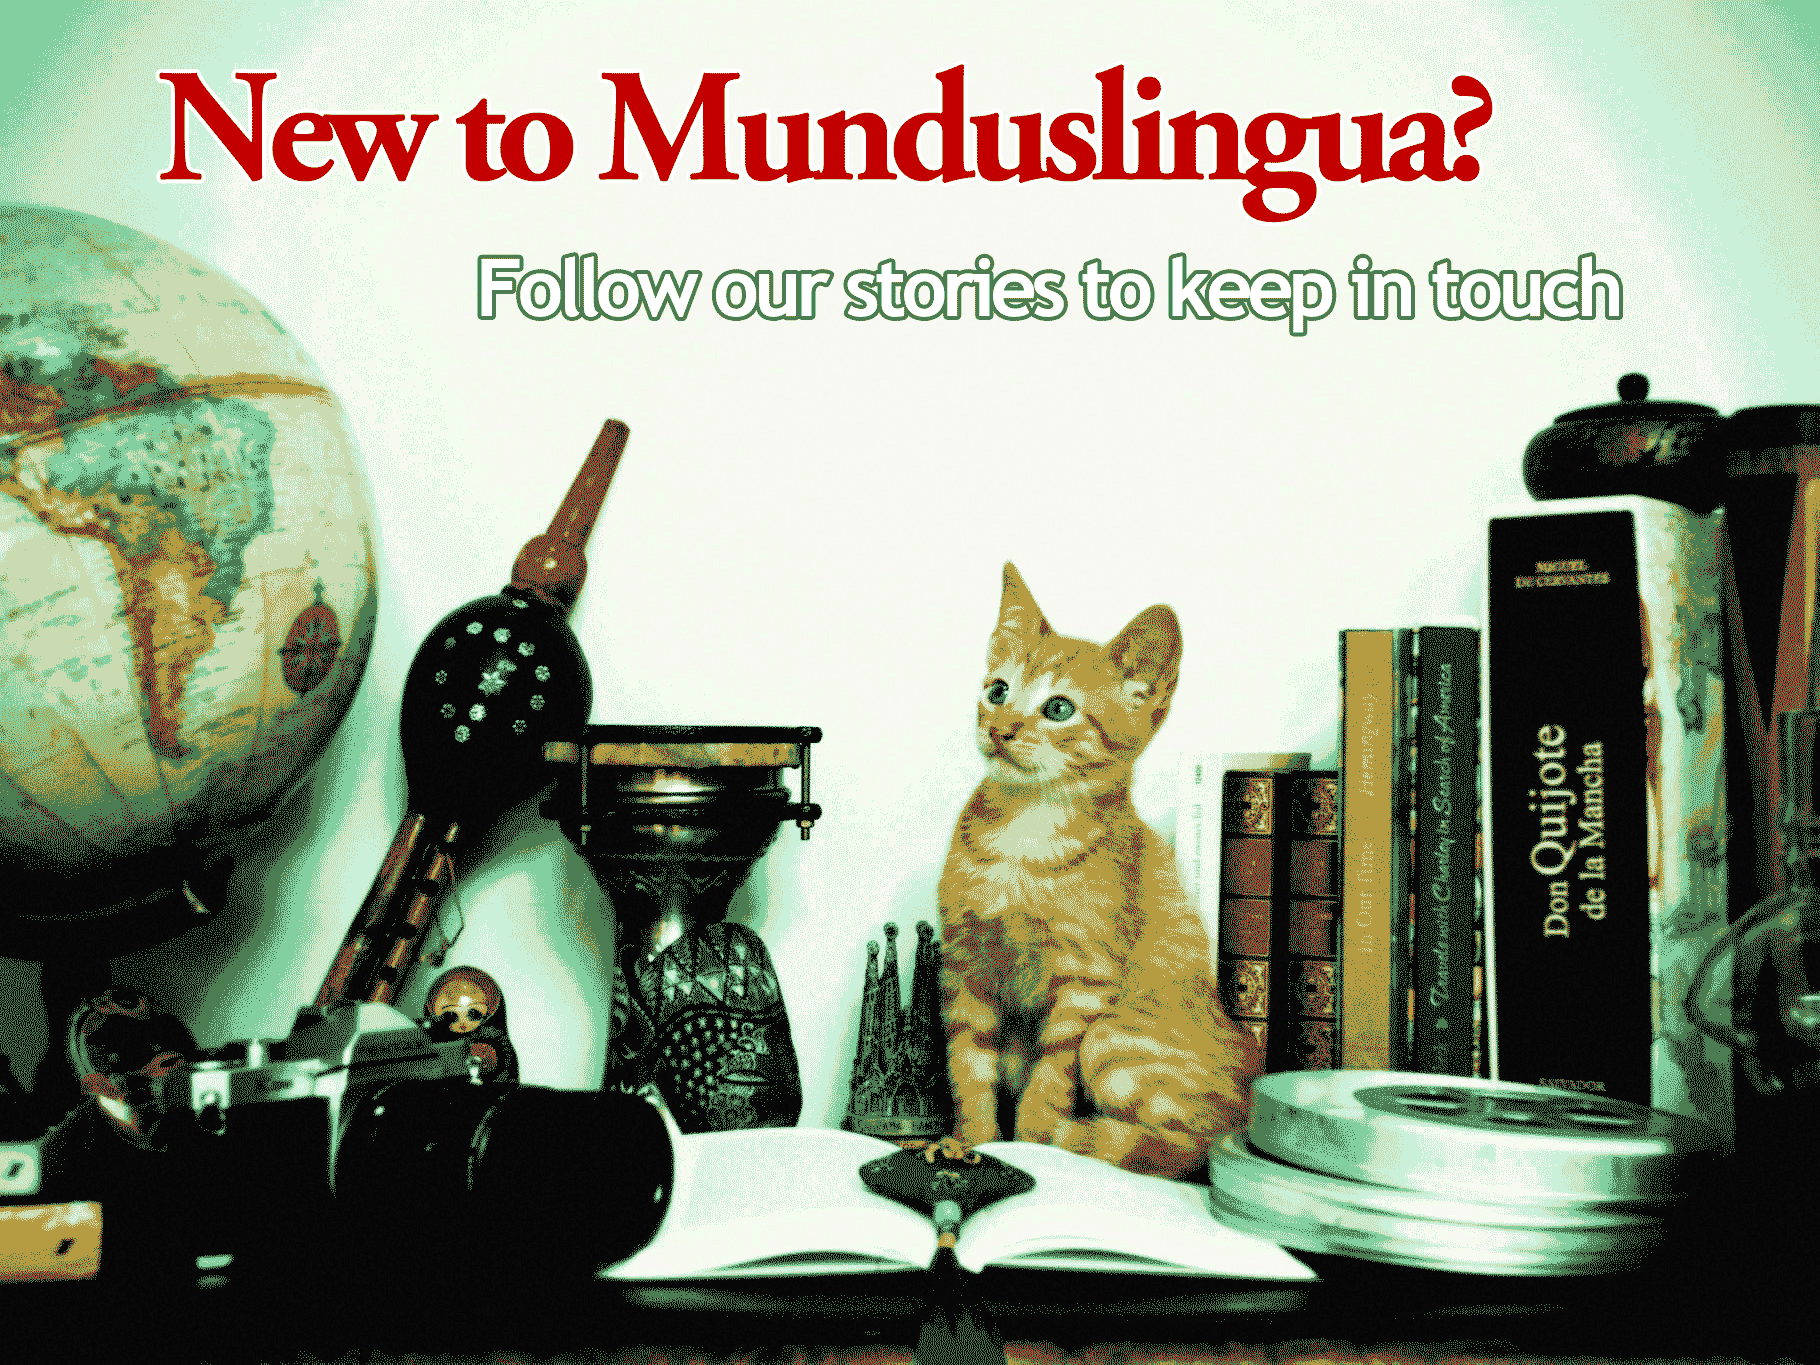 Munduslingua Stories